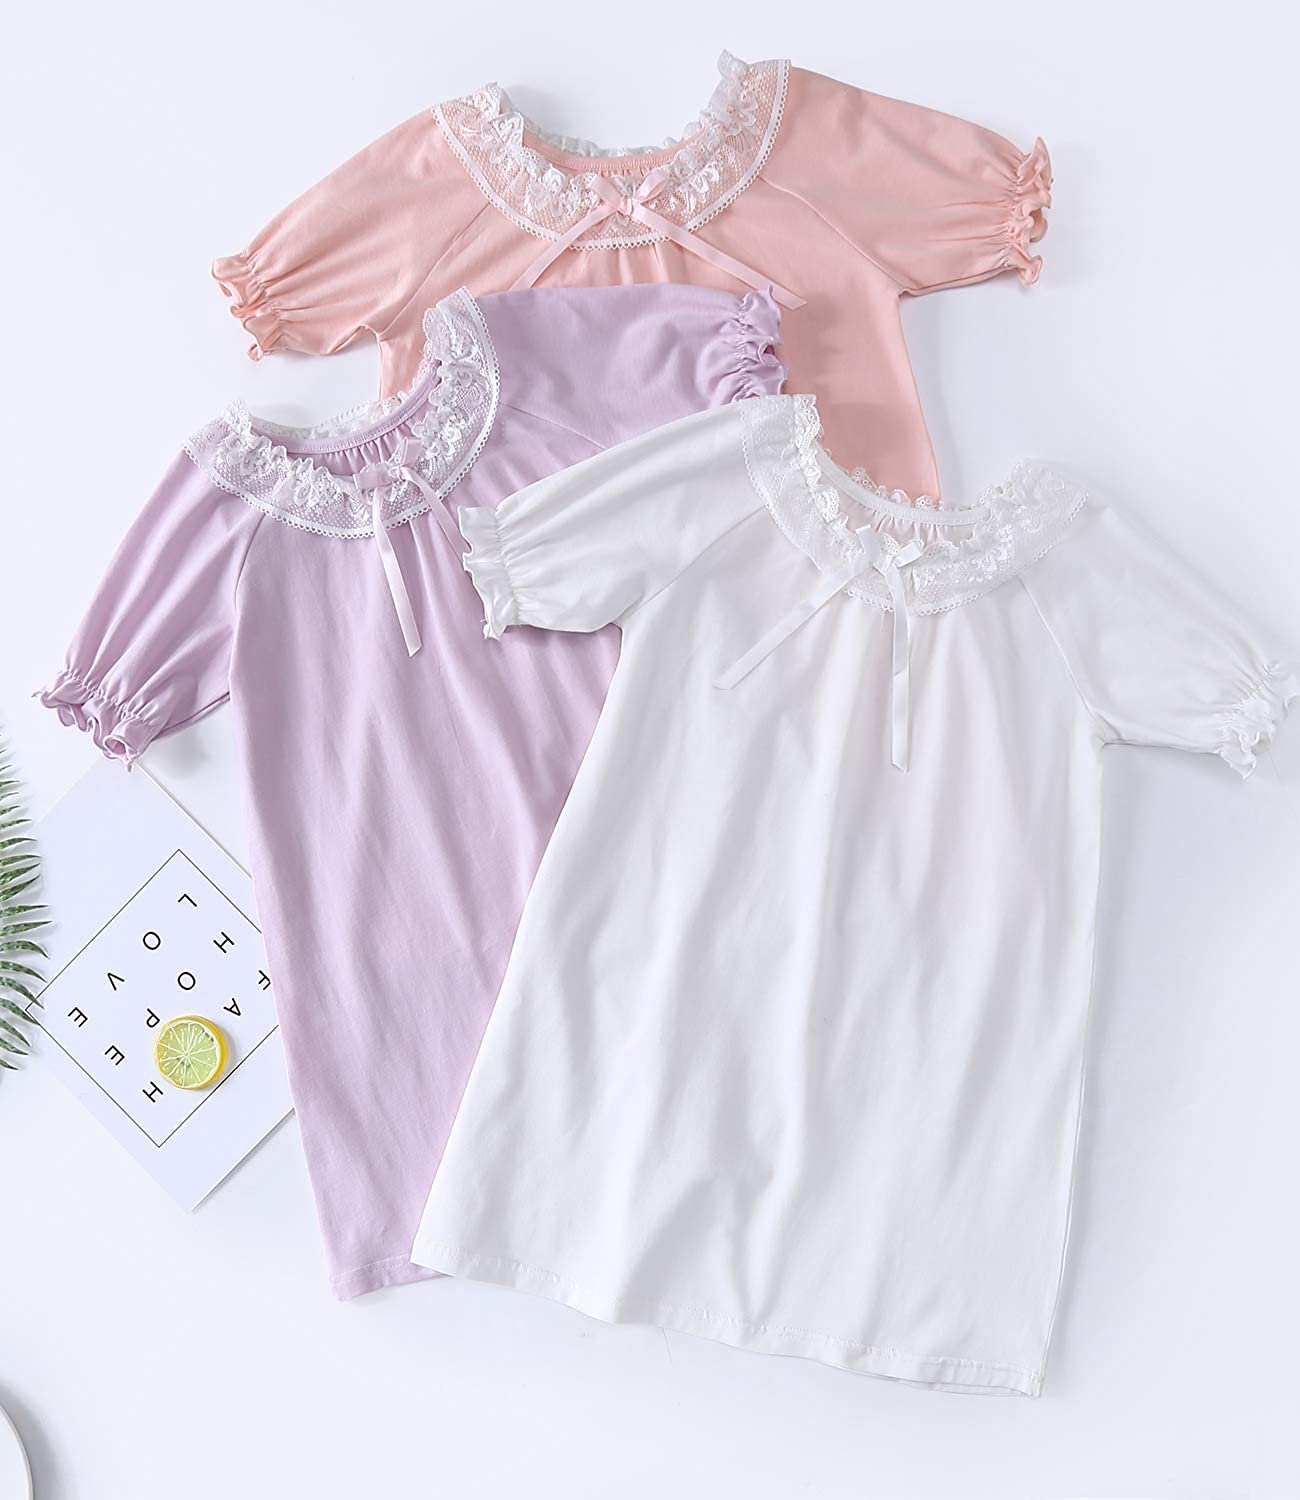 Kids Sleep Shirts Princess Sleepwear for Toddler 2-15 Years for Childrens Day HOYMN Little Girls Lace Cotton Nightgowns